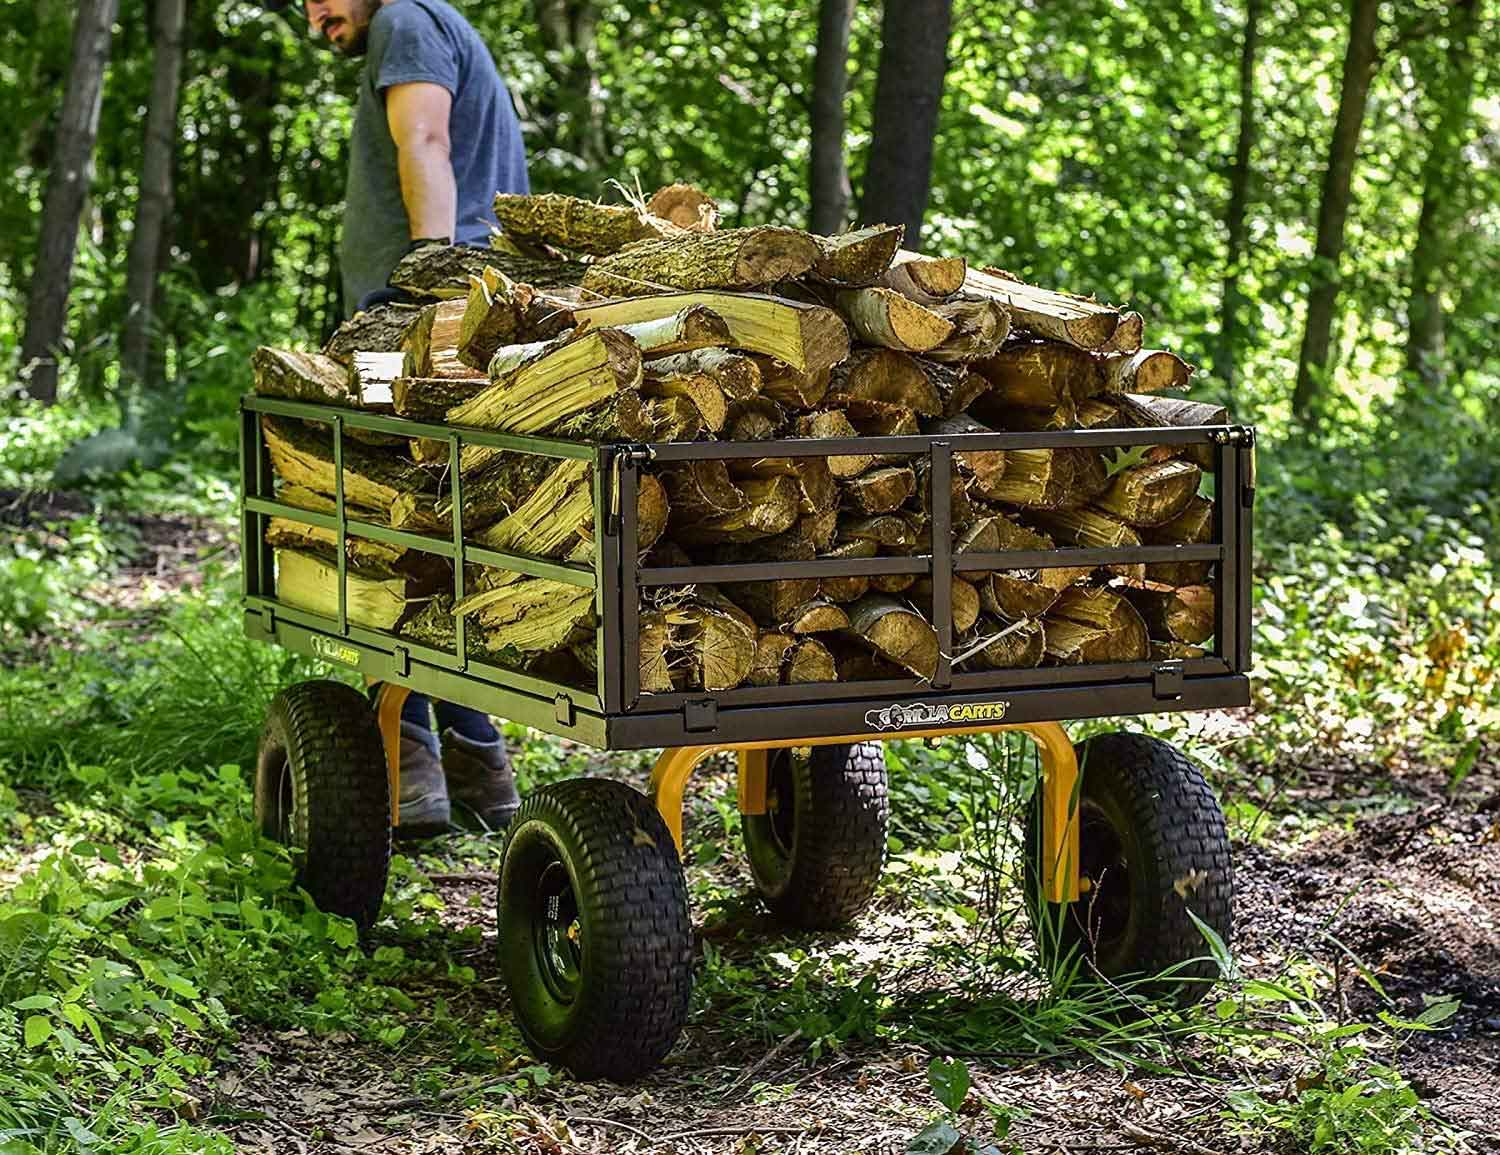 Utility cart filled with logs